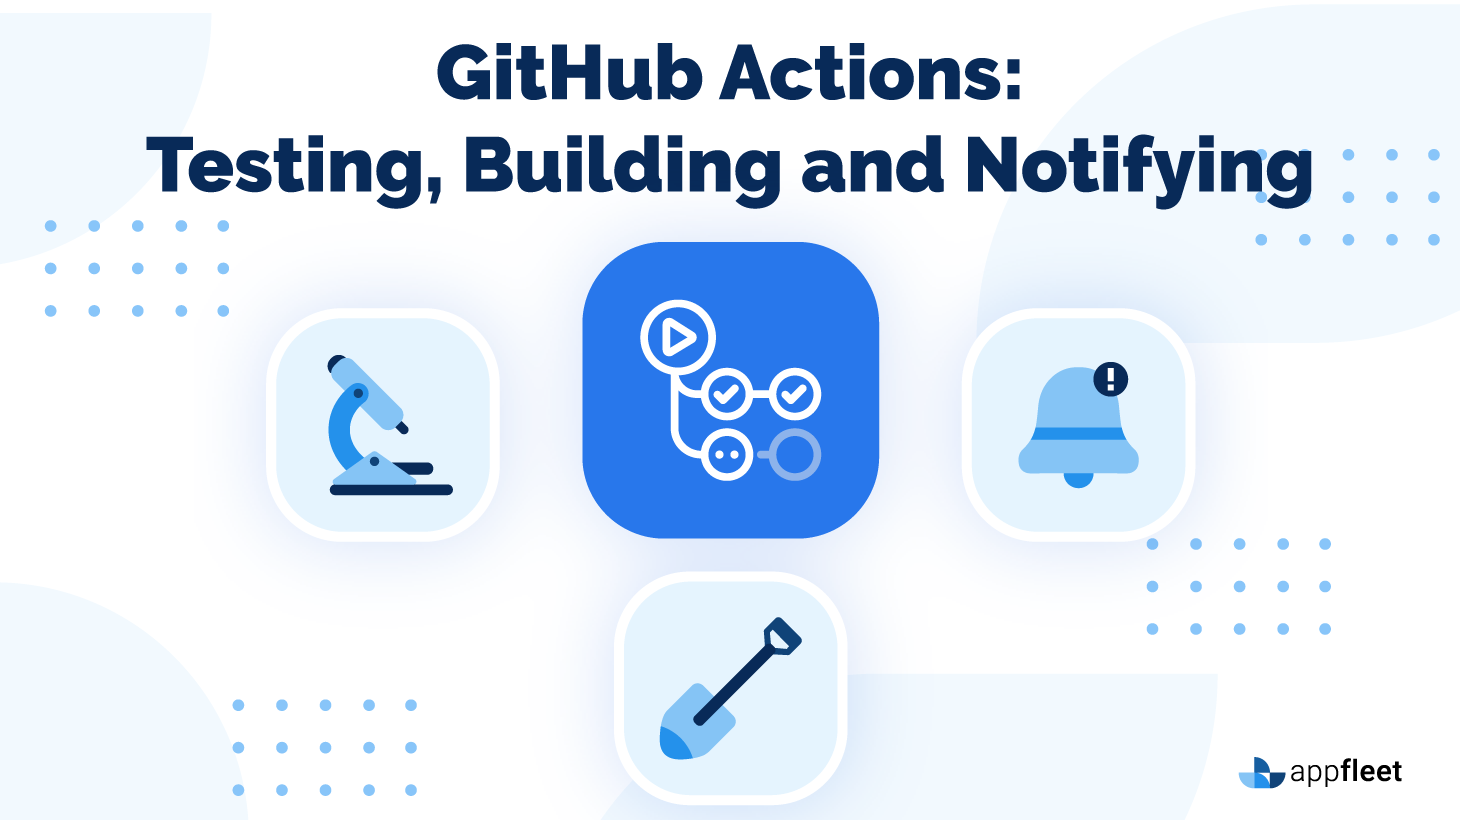 GitHub Actions: Testing, Building and Notifying